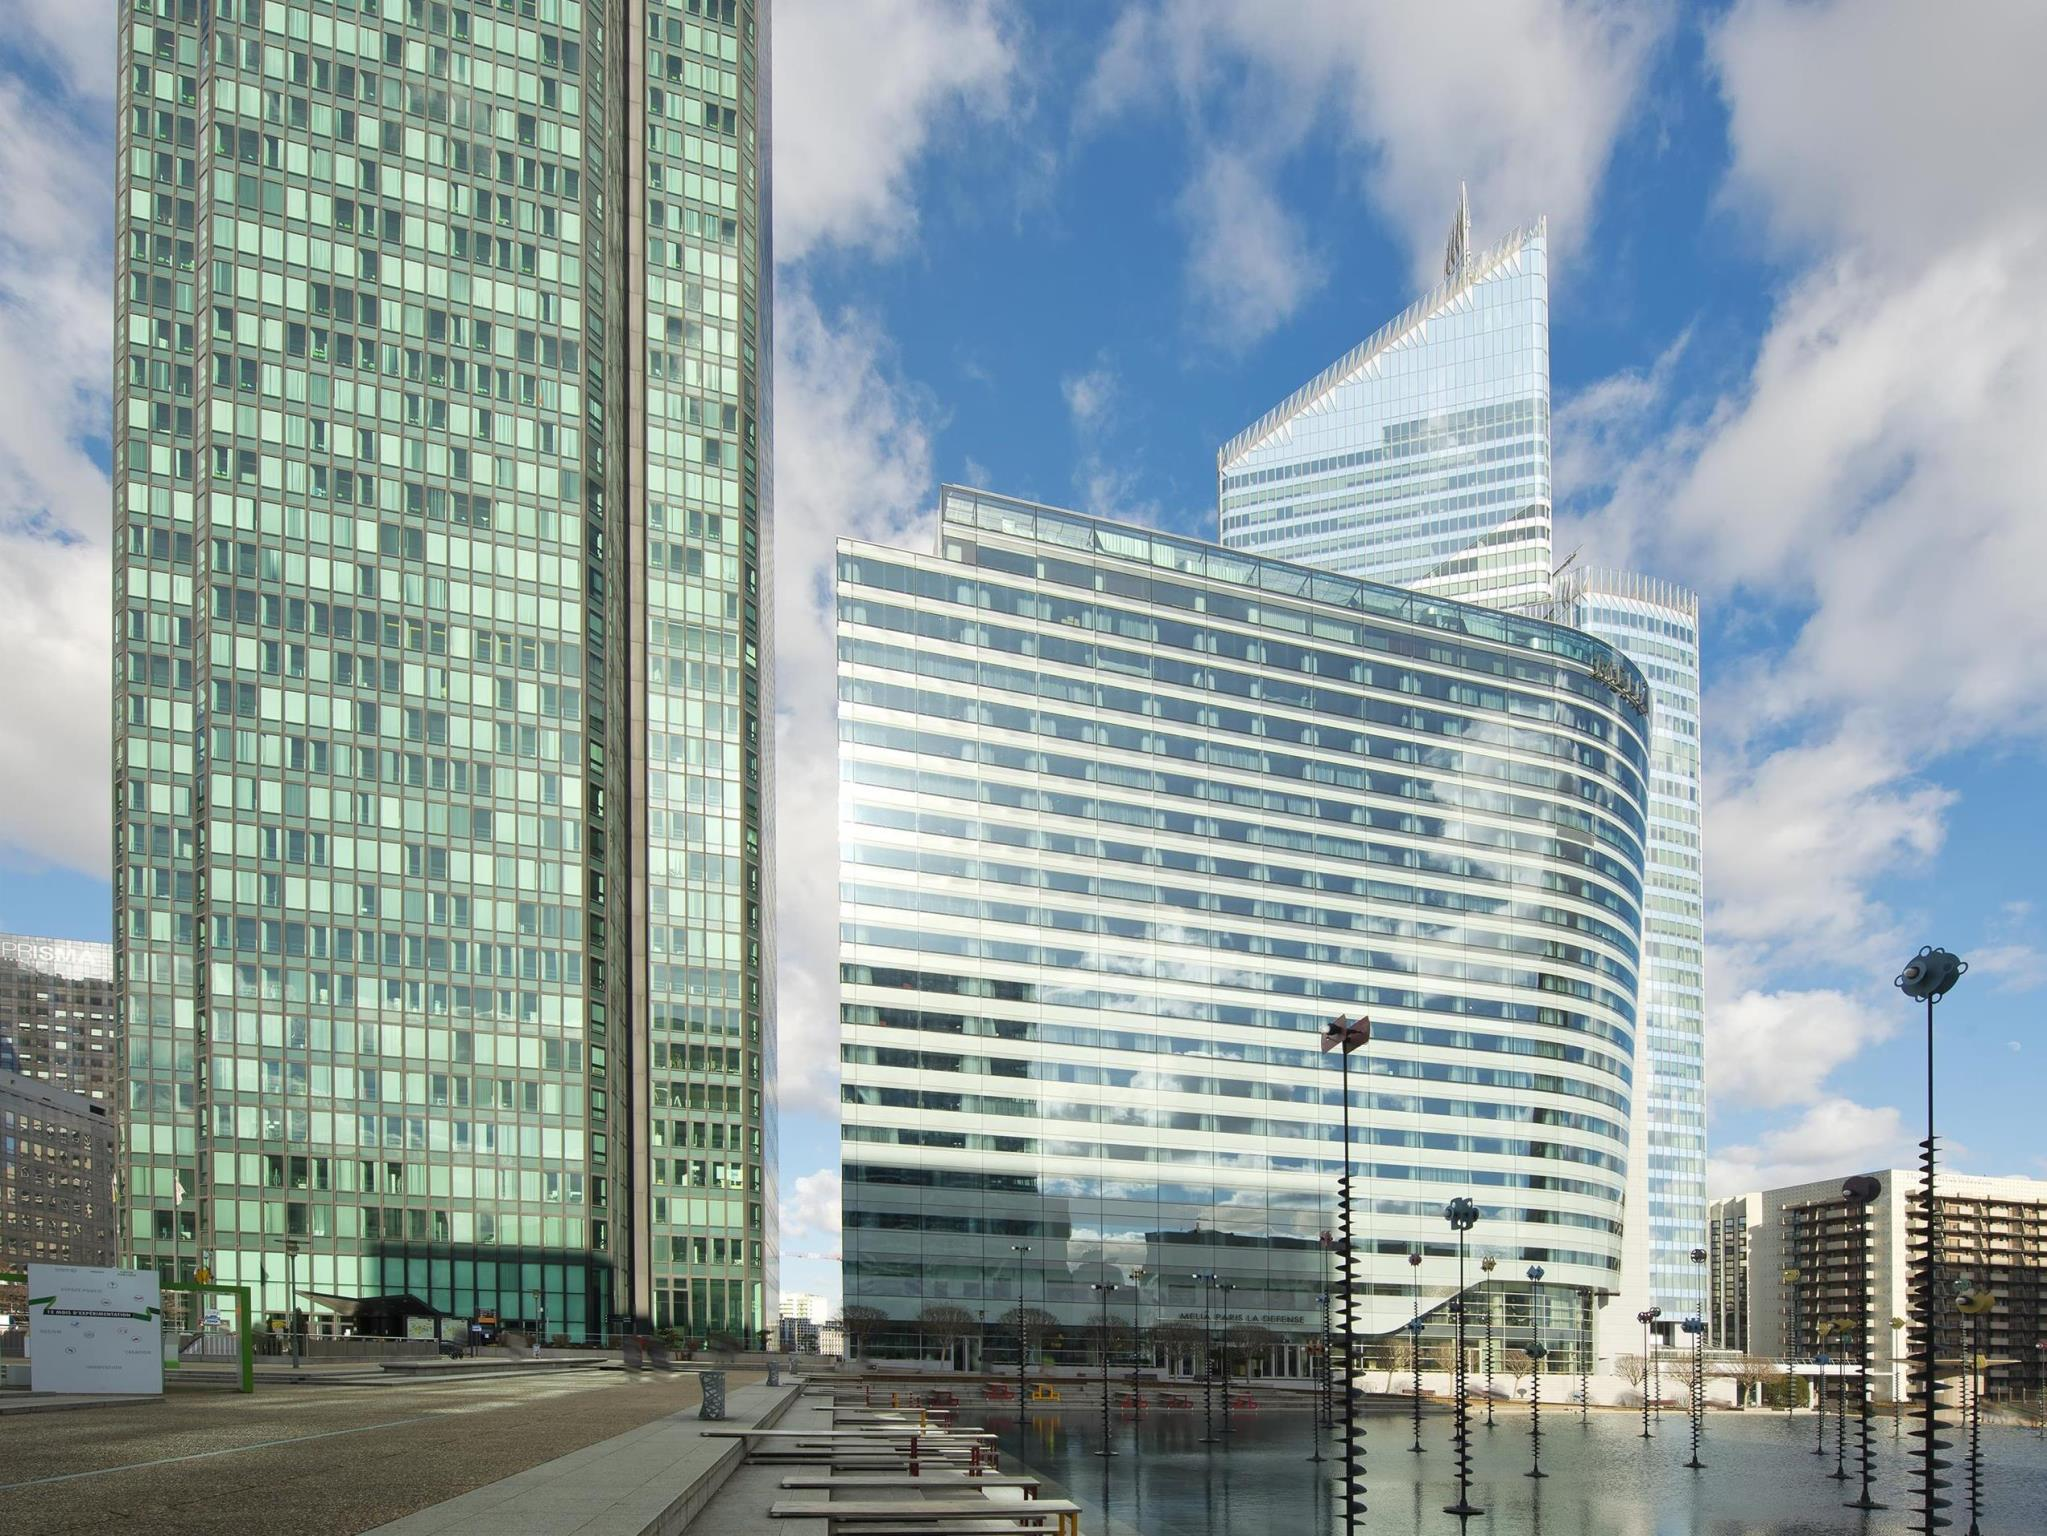 La Defense Pictures Images and Stock Photos iStock